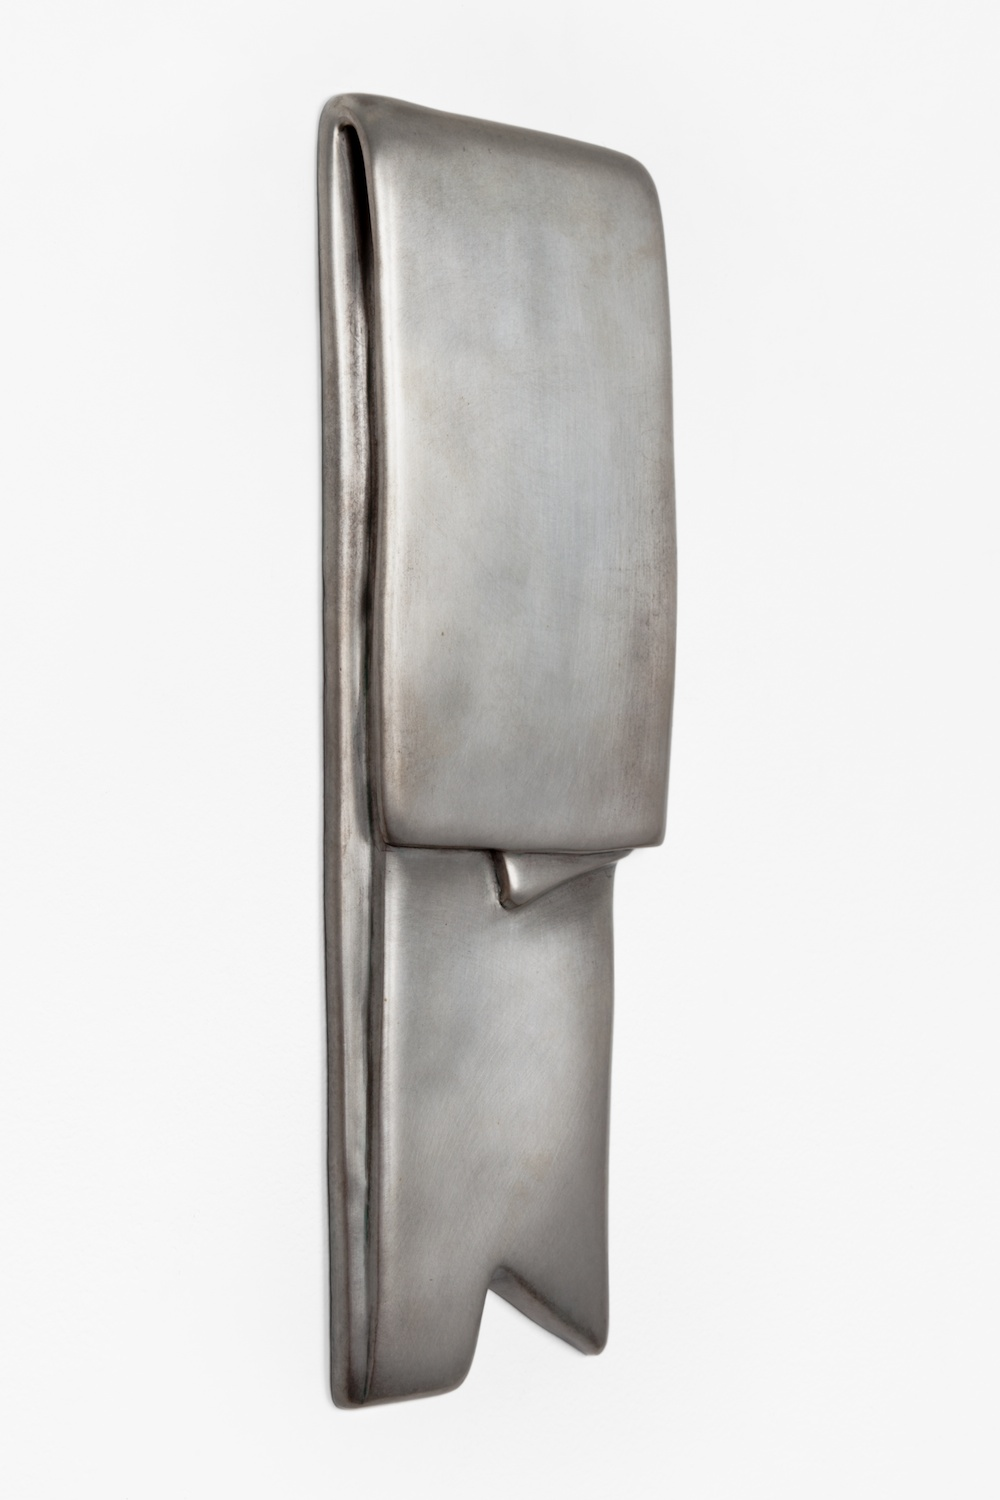 Anthony Pearson  Untitled (Tablet)  2012 Bronze relief with silver nitrate patina 15h x 6w in AP320